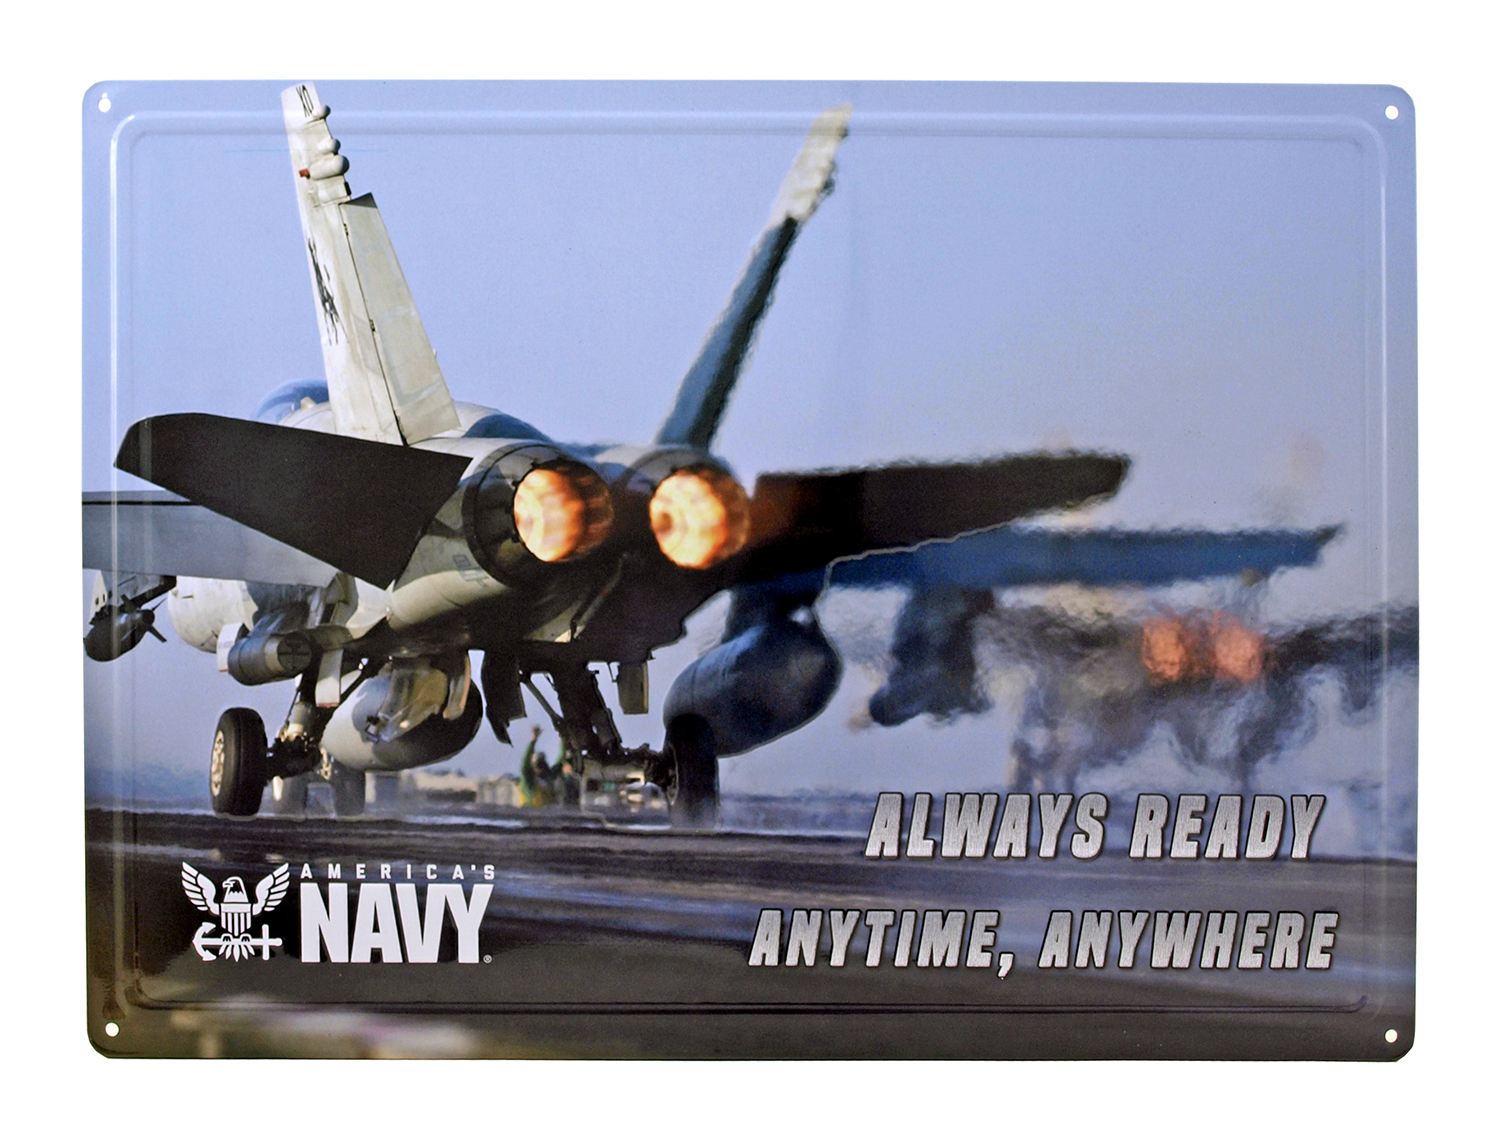 Aircraft Carrier Fighter Plane America's Navy Tin Metal Wall Sign